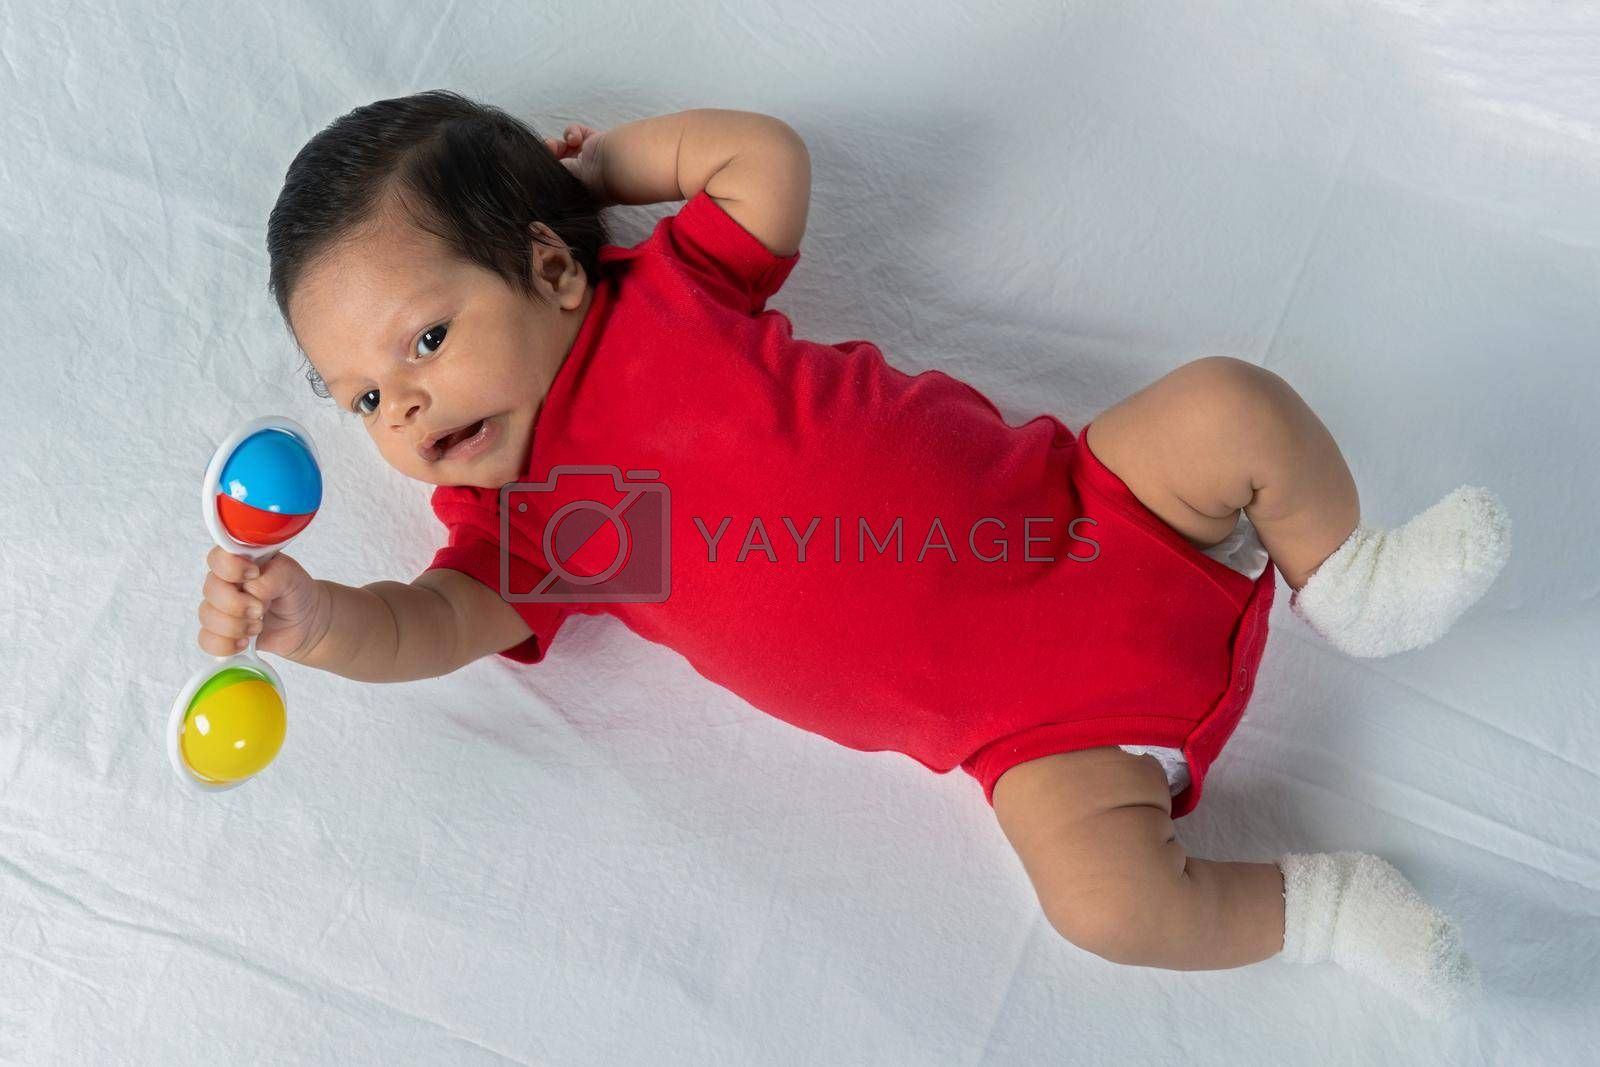 Royalty free image of Infant child by jrivalta